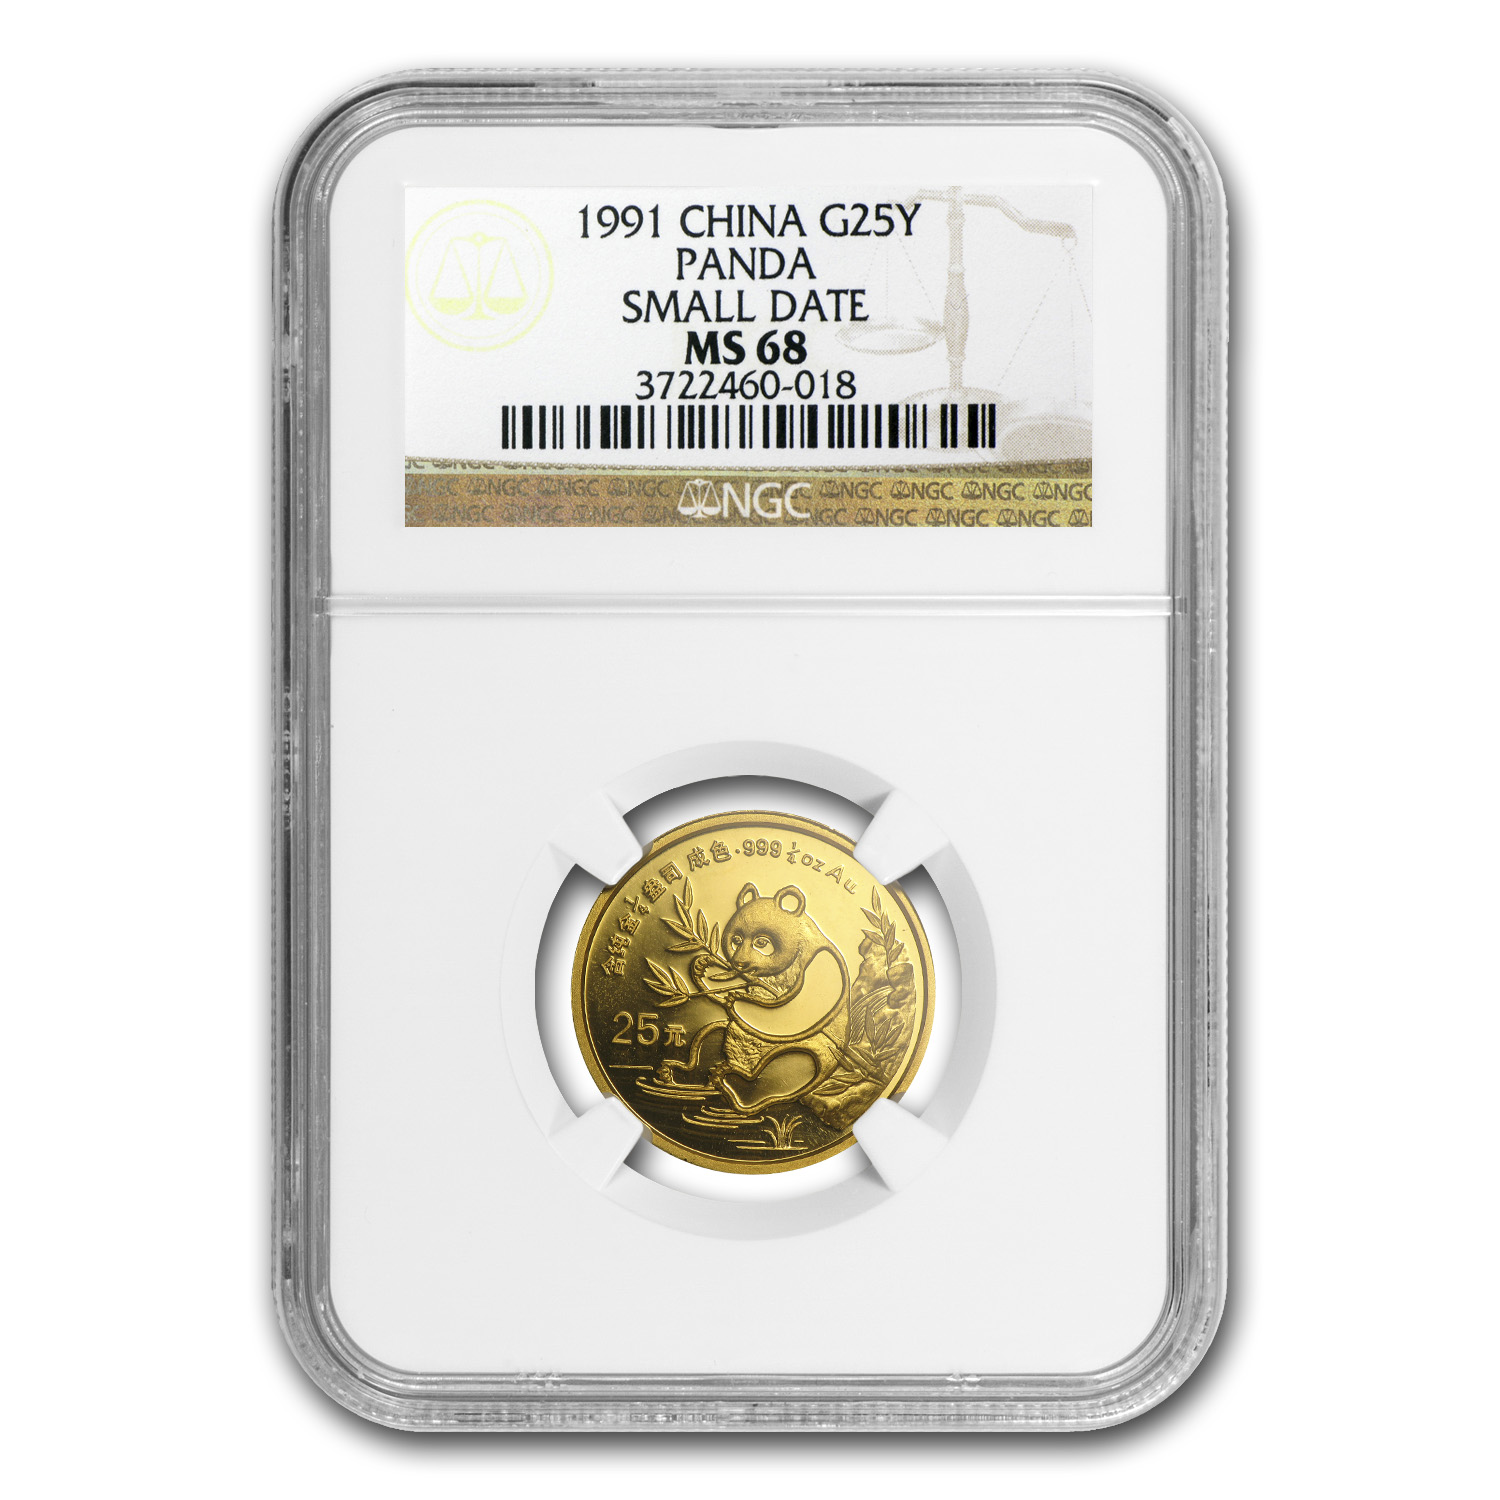 1991 China 1/4 oz Gold Panda Small Date MS-68 NGC